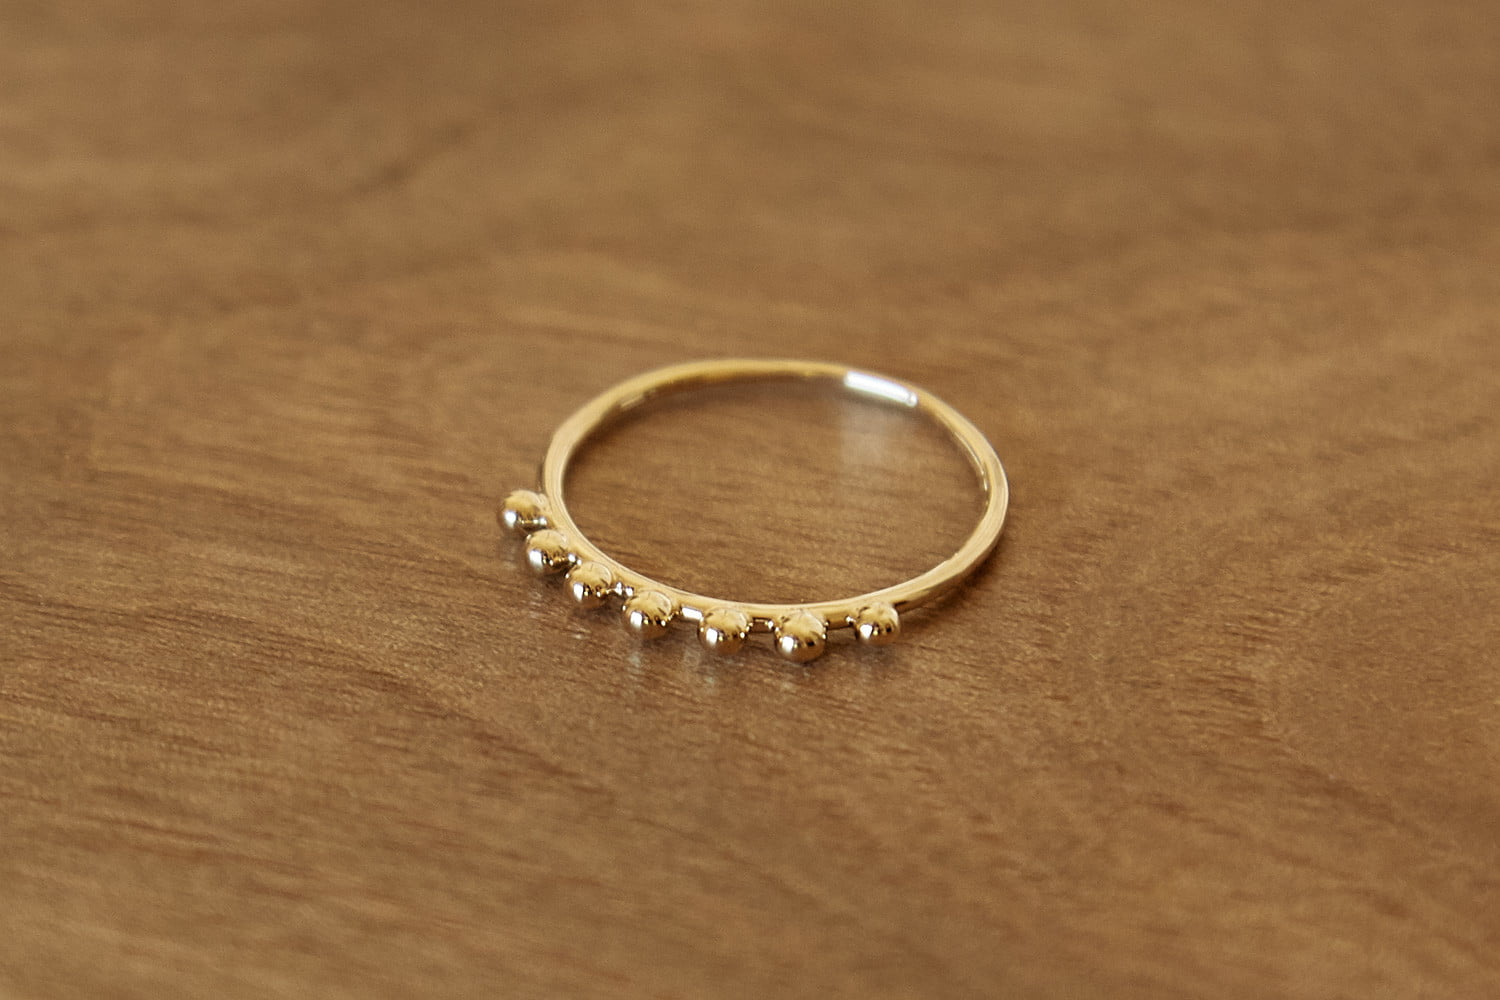 Dell Jewelry ball ring